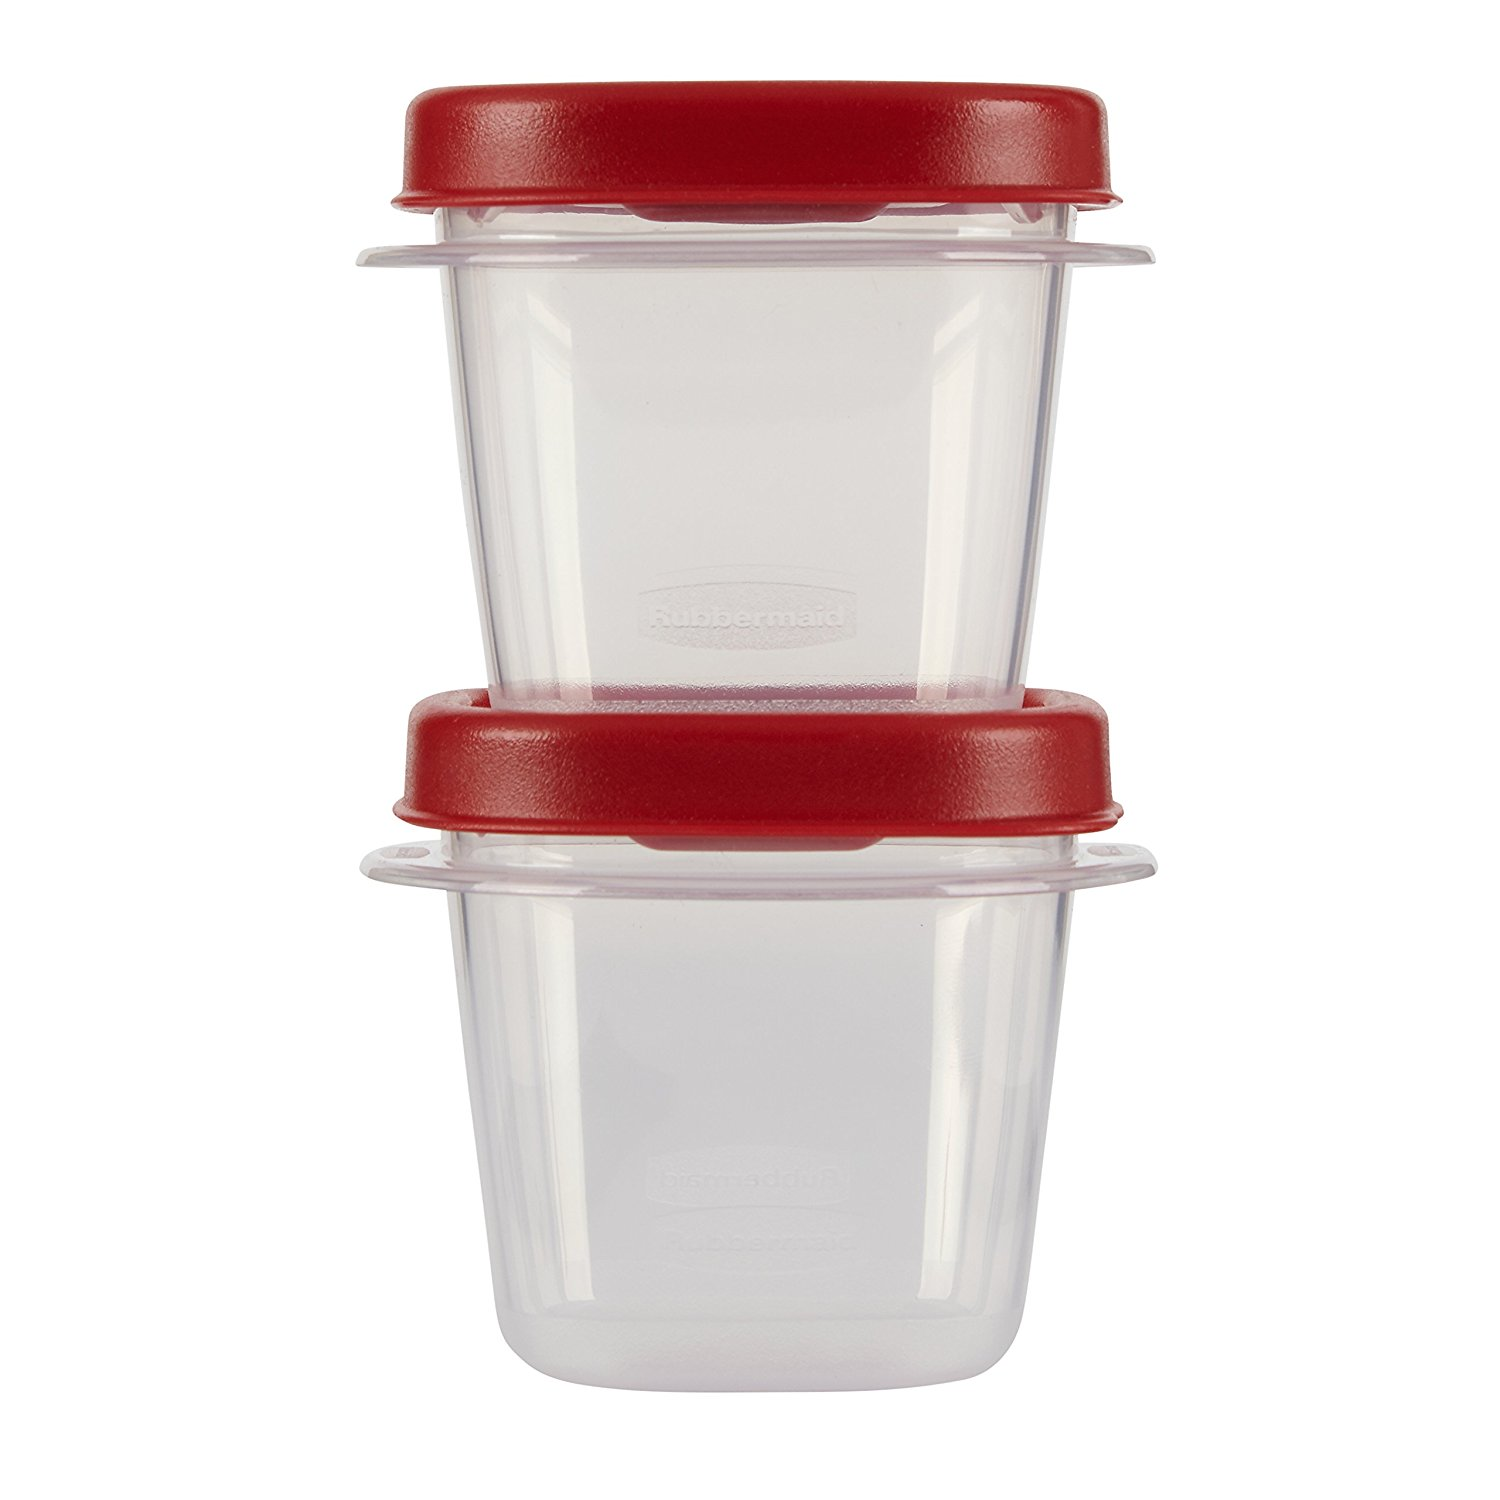 Rubbermaid Easy Find Lid Square 1/2 Cup Food Storage Container 2 pack  sc 1 st  Homebrew Finds & Rubbermaid Easy Find Lid Square 1/2 Cup Food Storage Container 2 ...